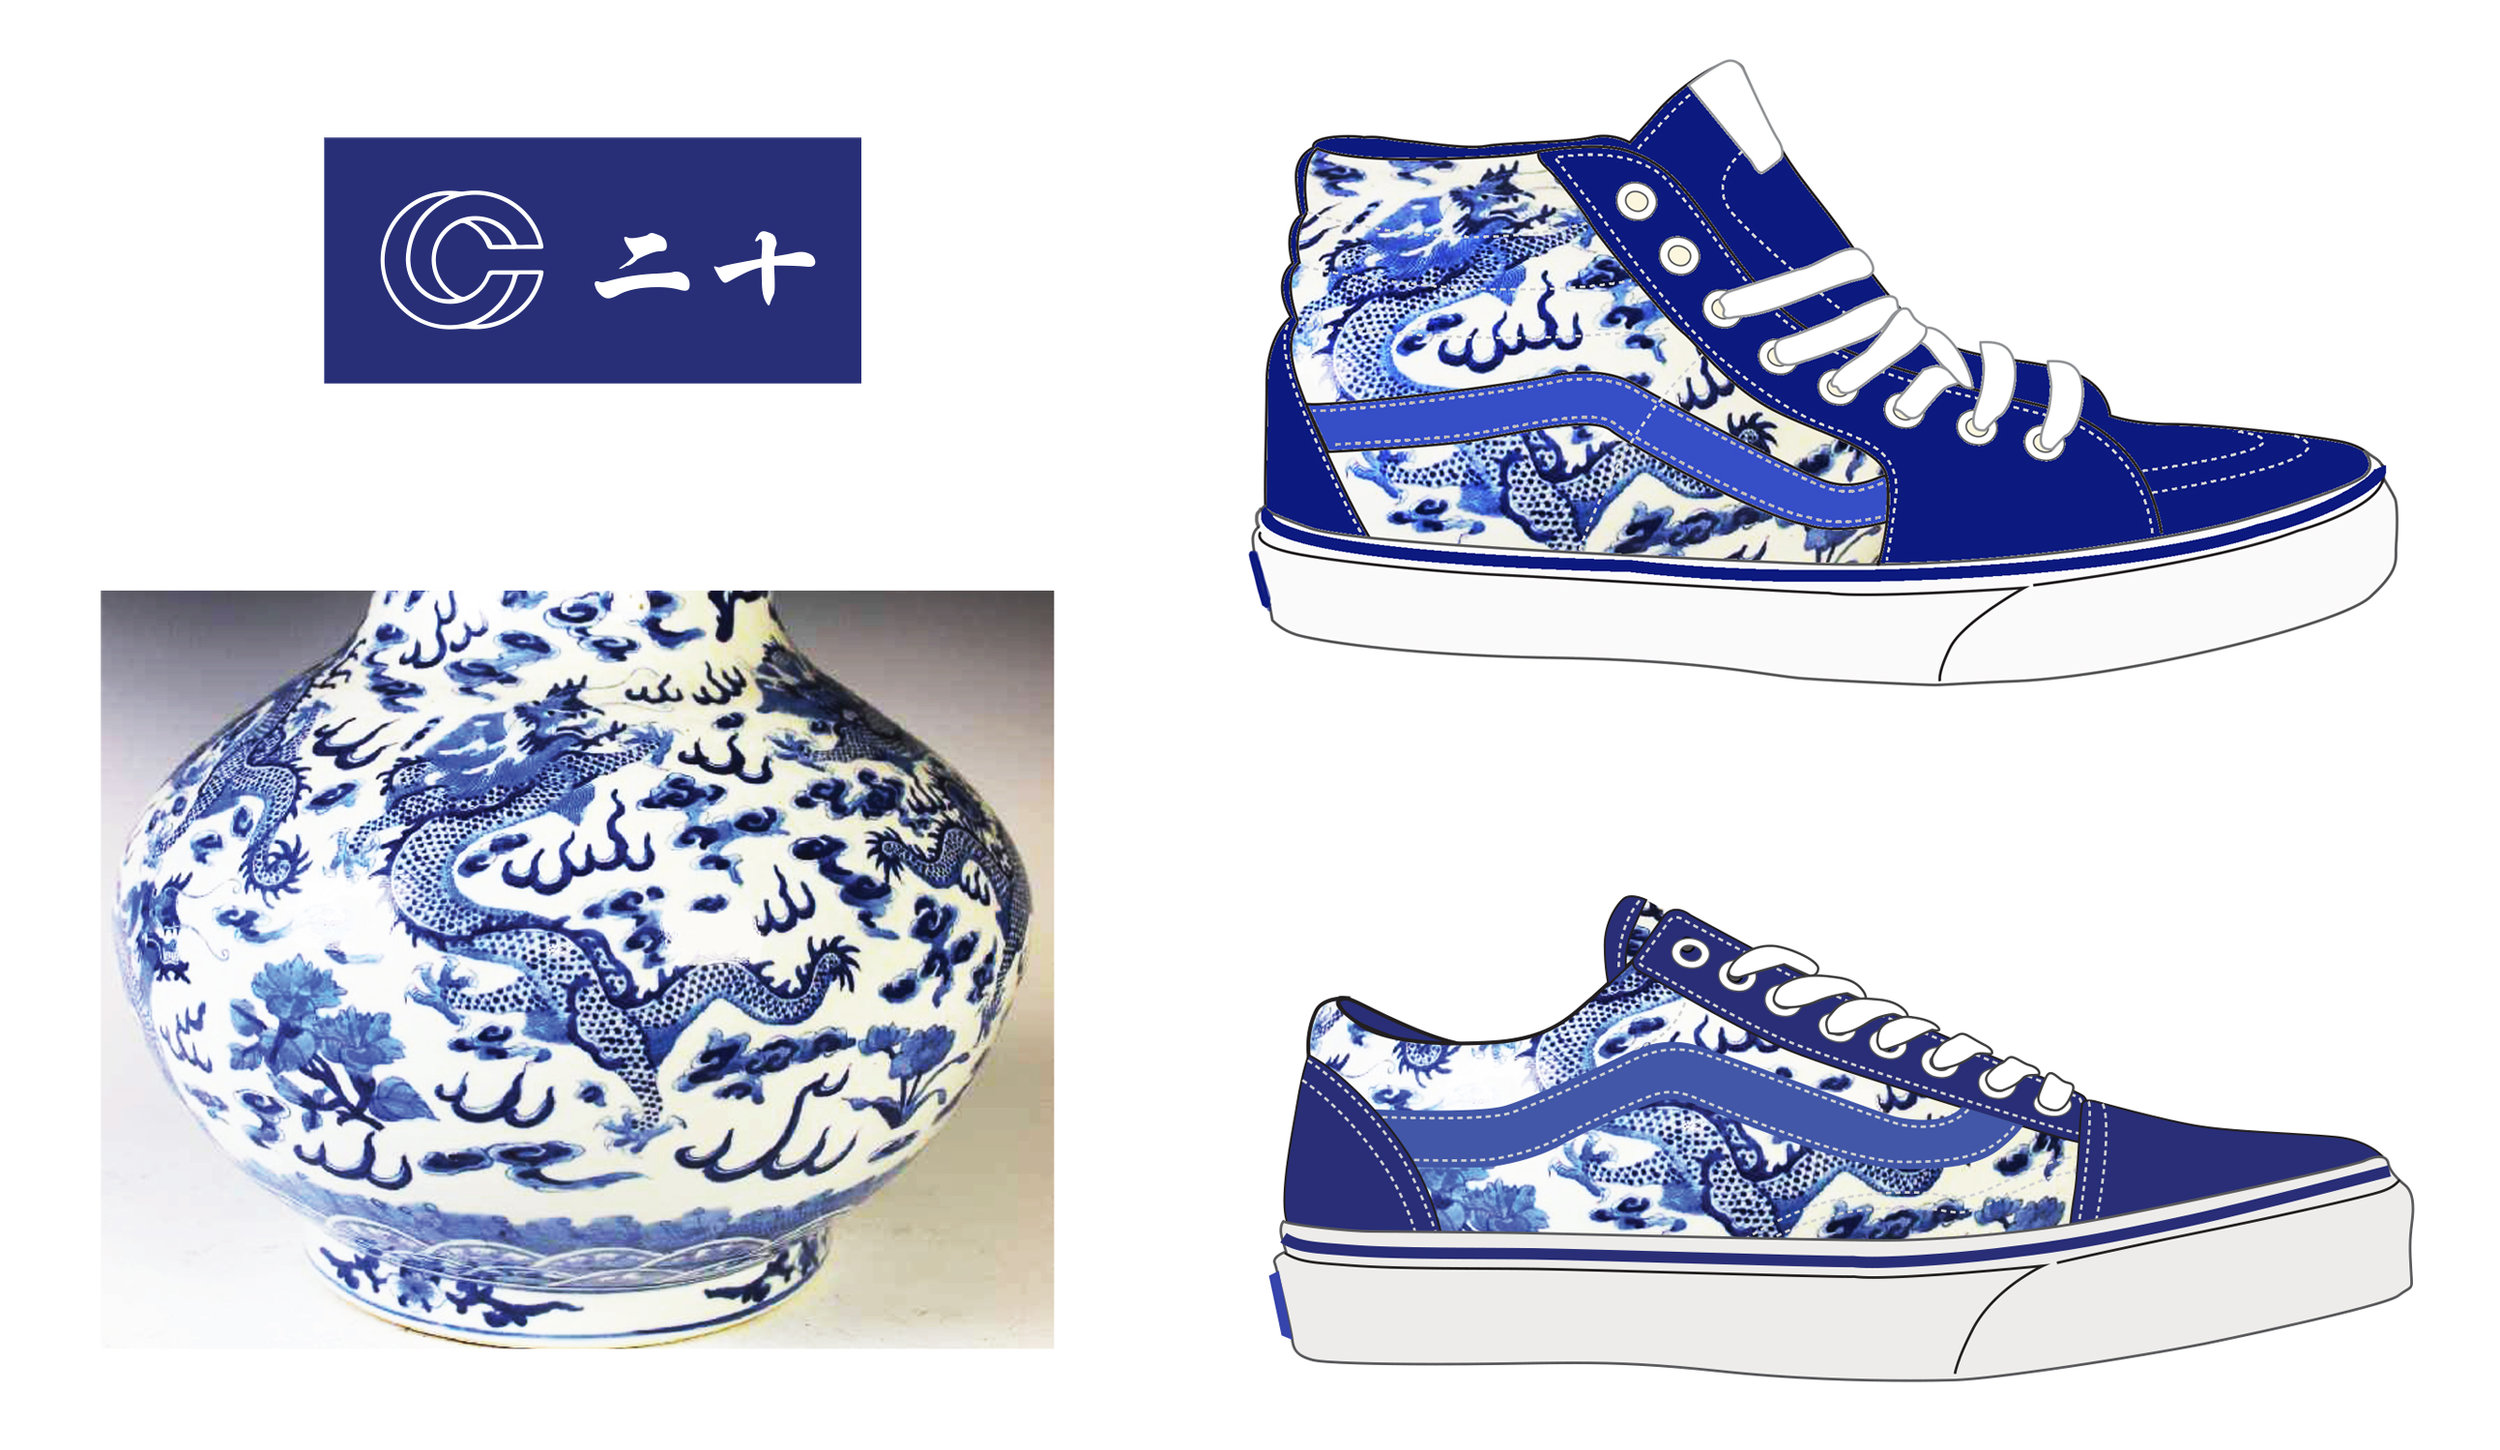 Concept drawings for CNCPTS X Vans 'Fine China'